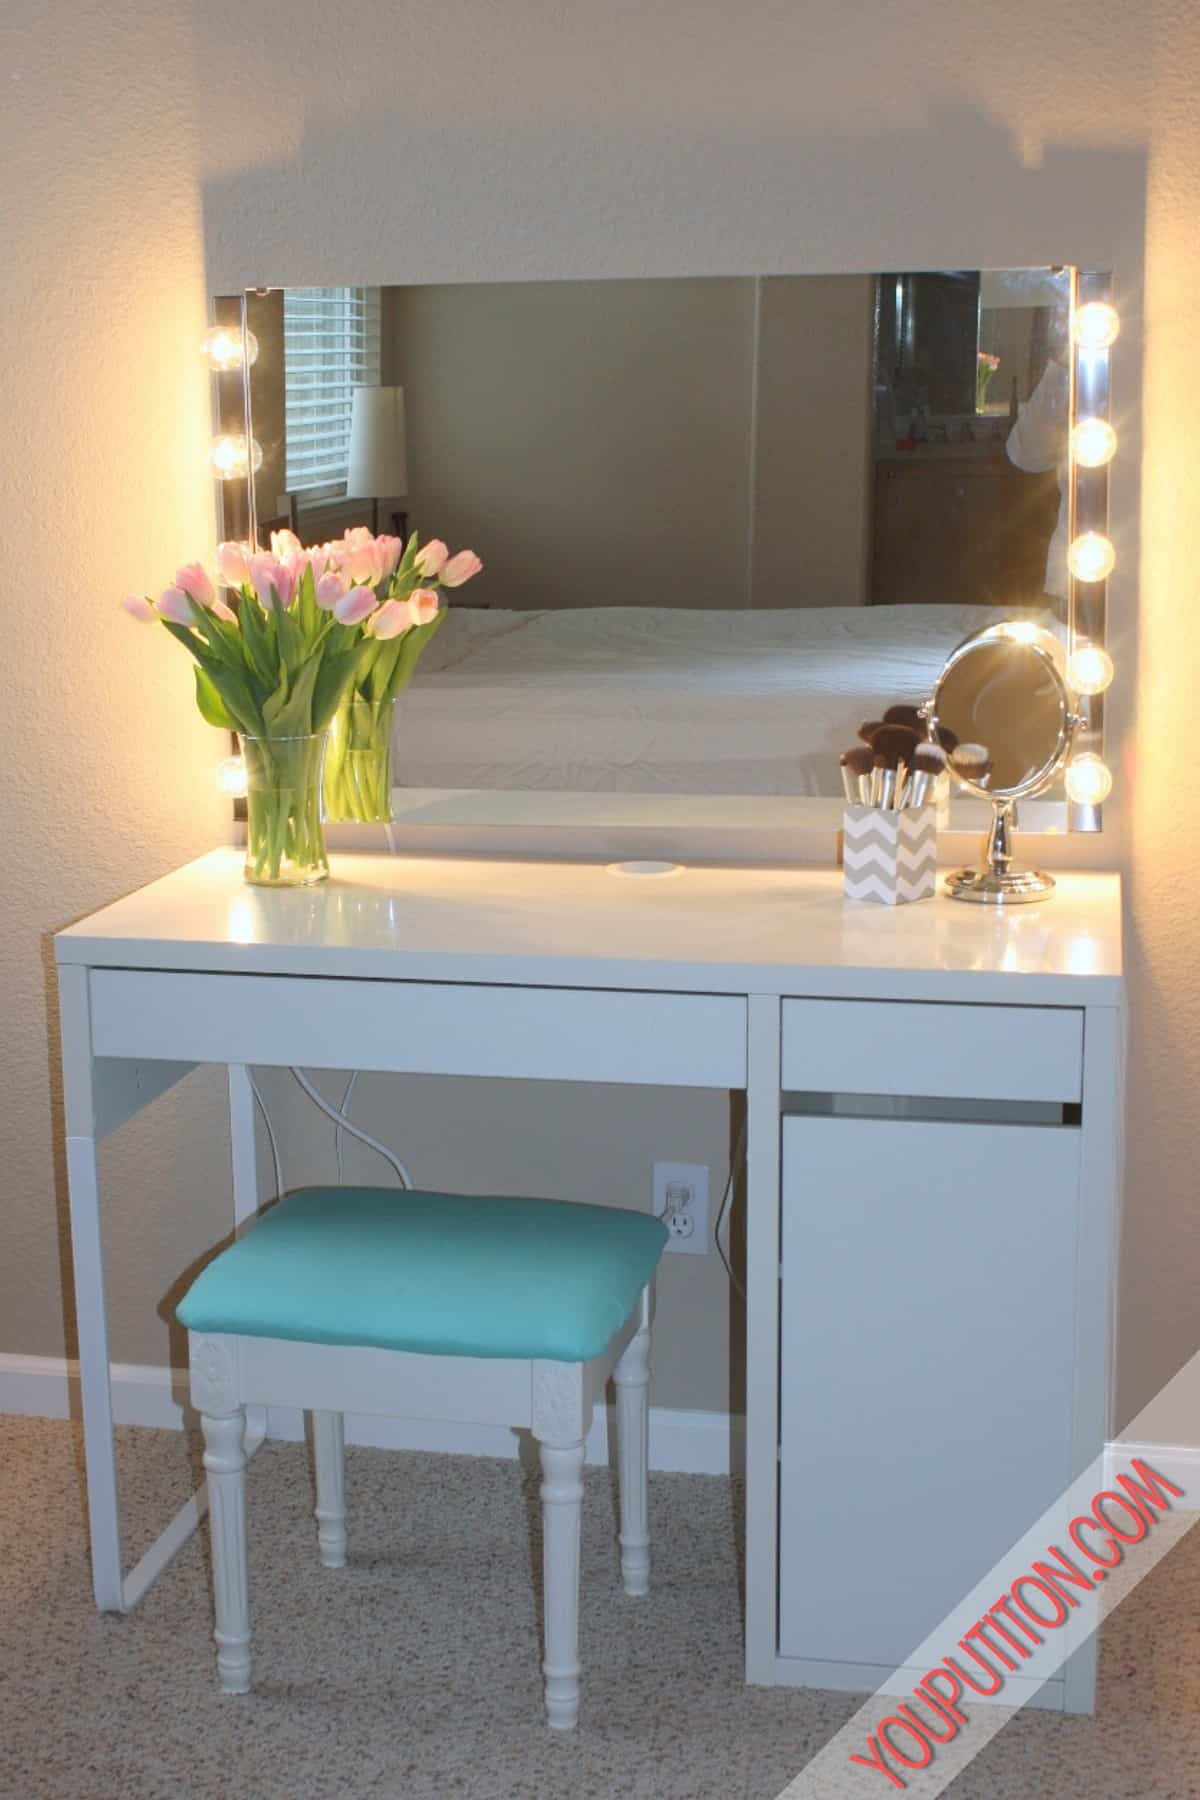 How to choose and install the right lighting for a vanity space